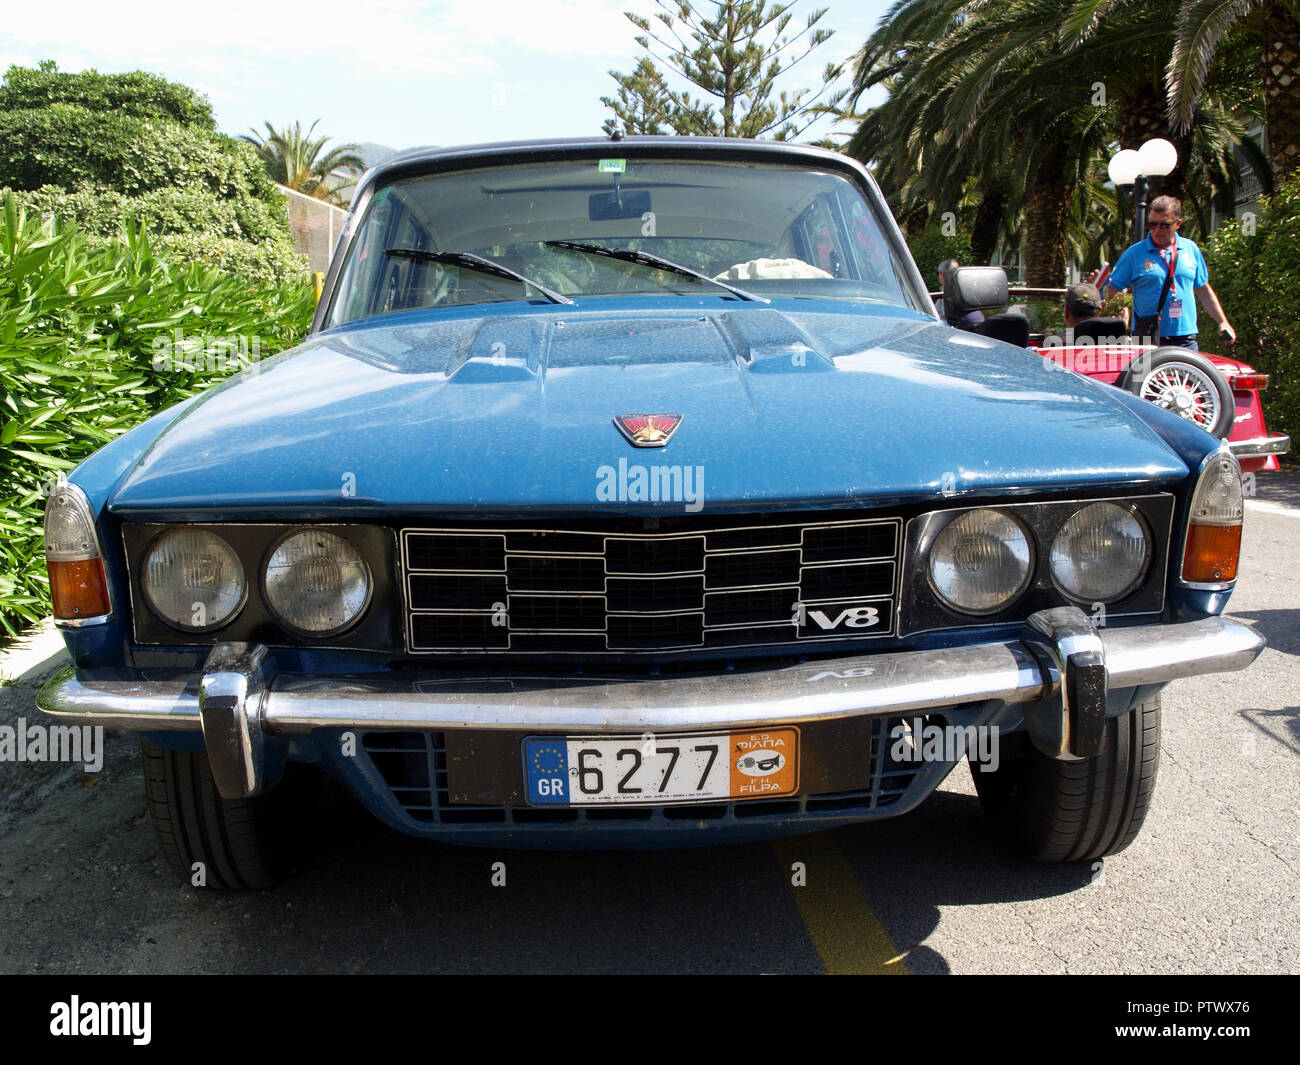 Vintage Rover 2000 P6 on display at the 8th Hellenic Bulgarian LEKAM classic car rally at the Acharavi Park Hotel, Acharavi, Corfu, Greece - Stock Image